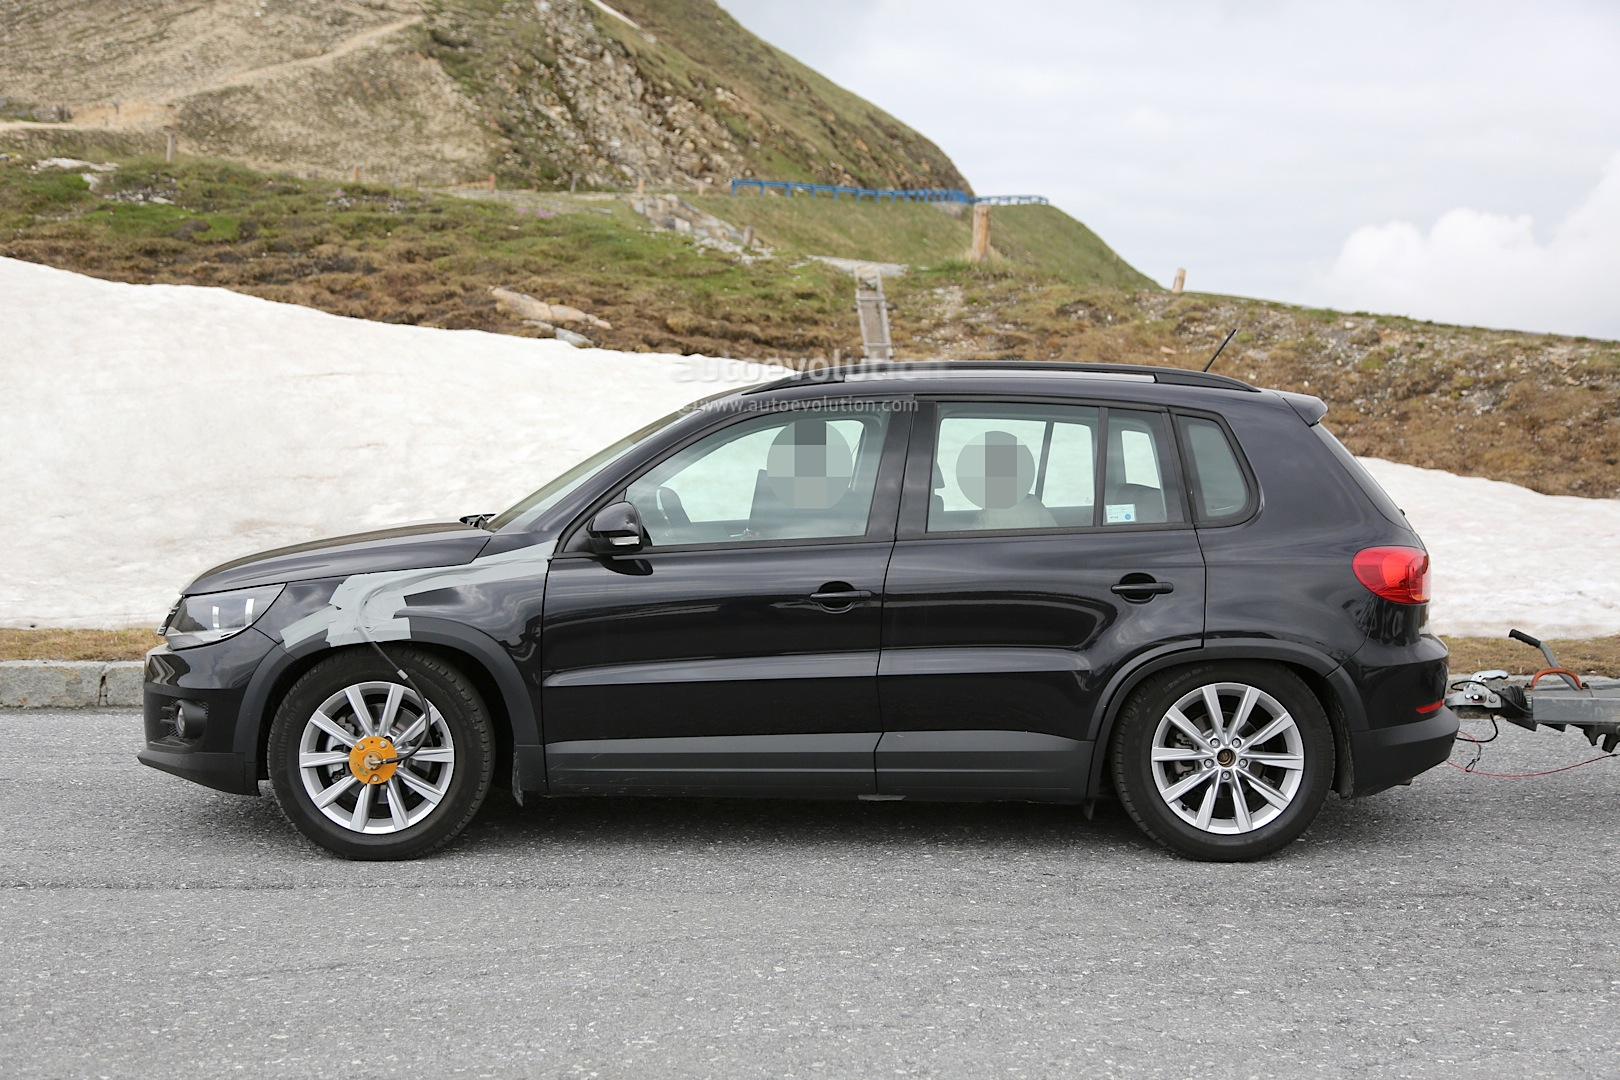 2016 Volkswagen Tiguan Spy Photos: First Glimpses of the ...